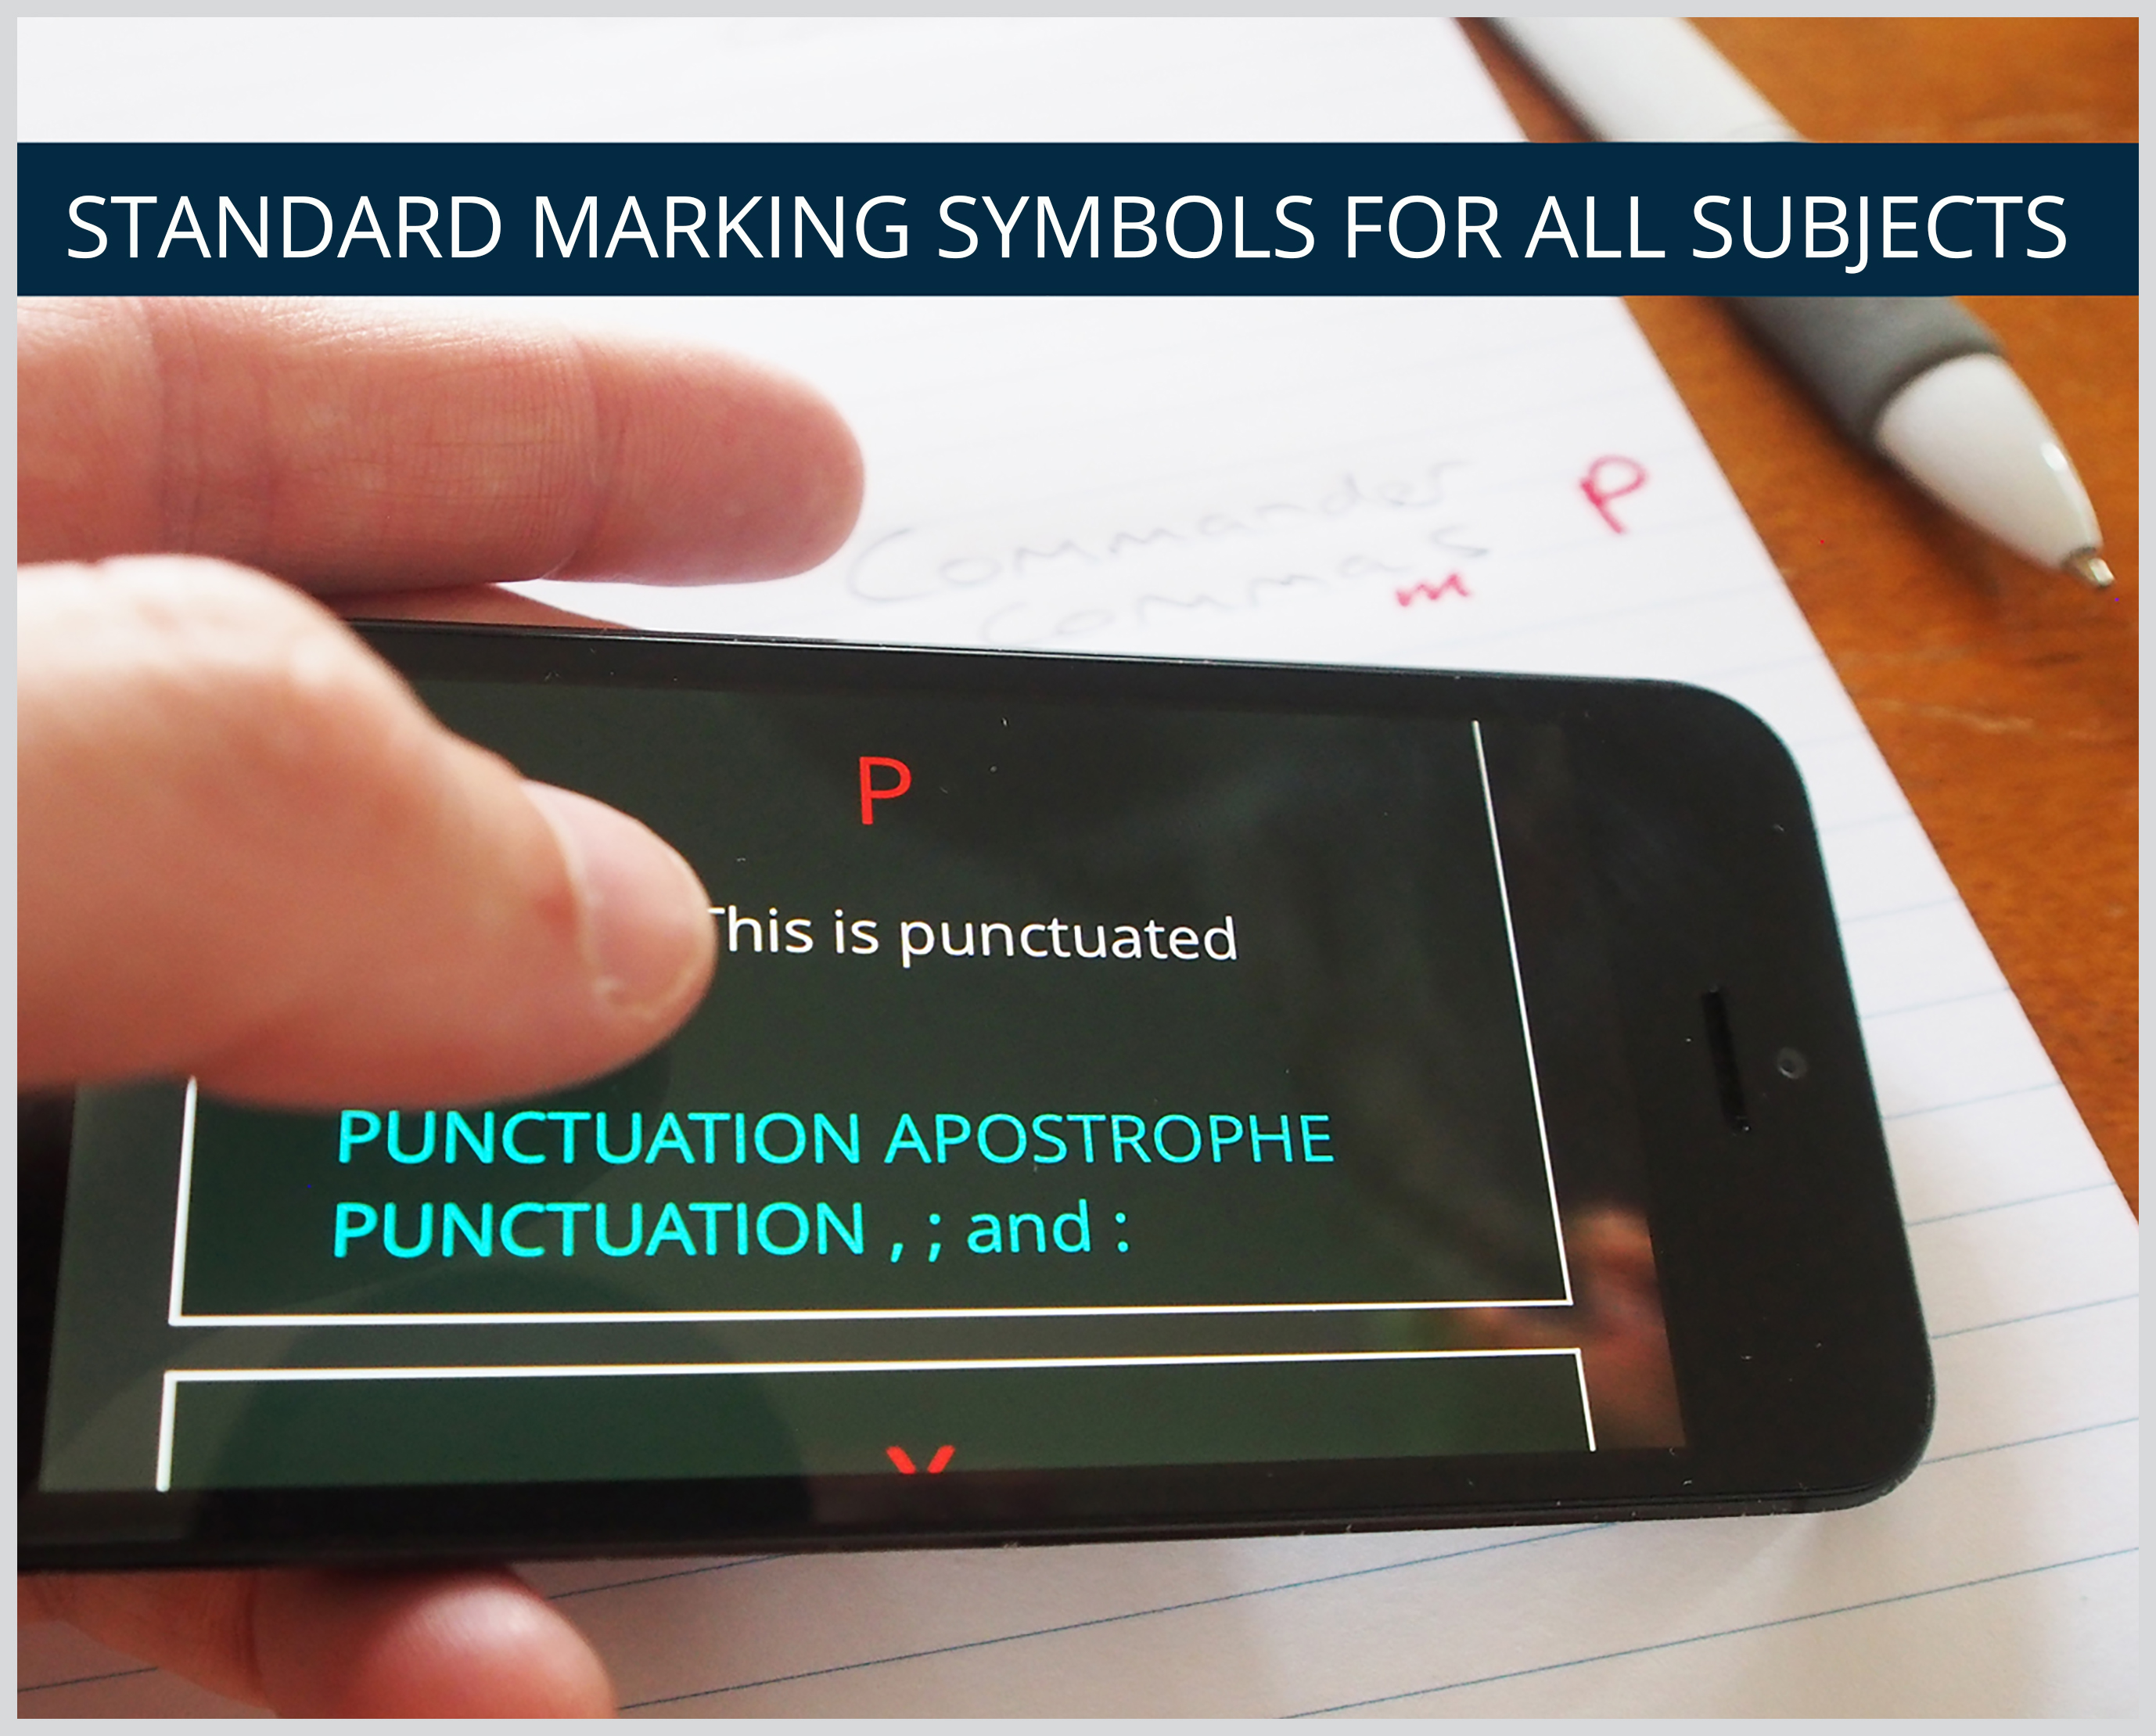 STANDARD MARKING SYMBOLS FOR ALL SUBJECTS